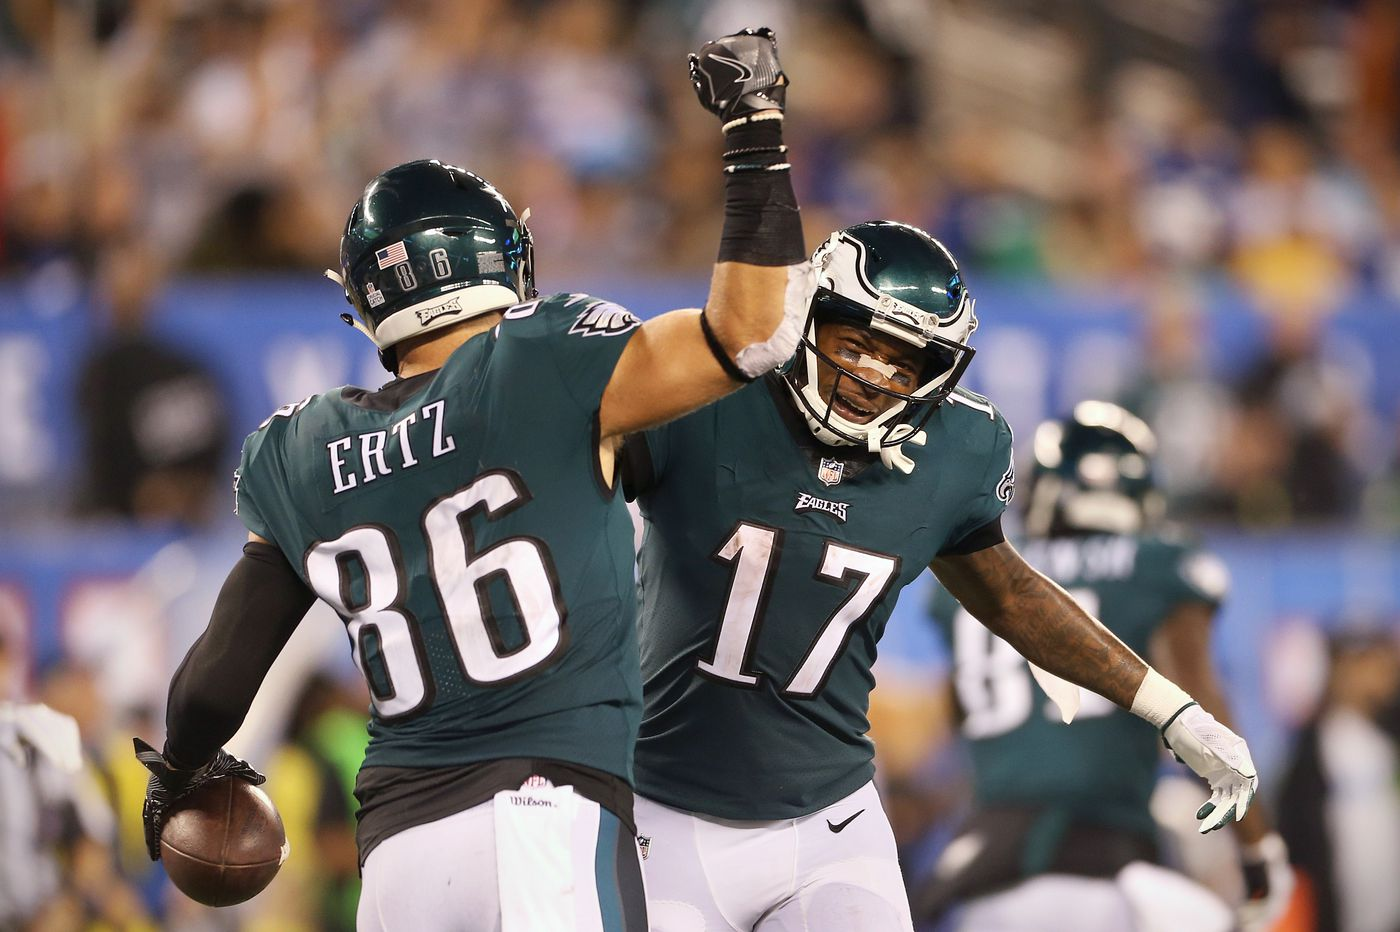 Eagles 34, Giants 13: It took until Week 6, but the Eagles finally played to expectations